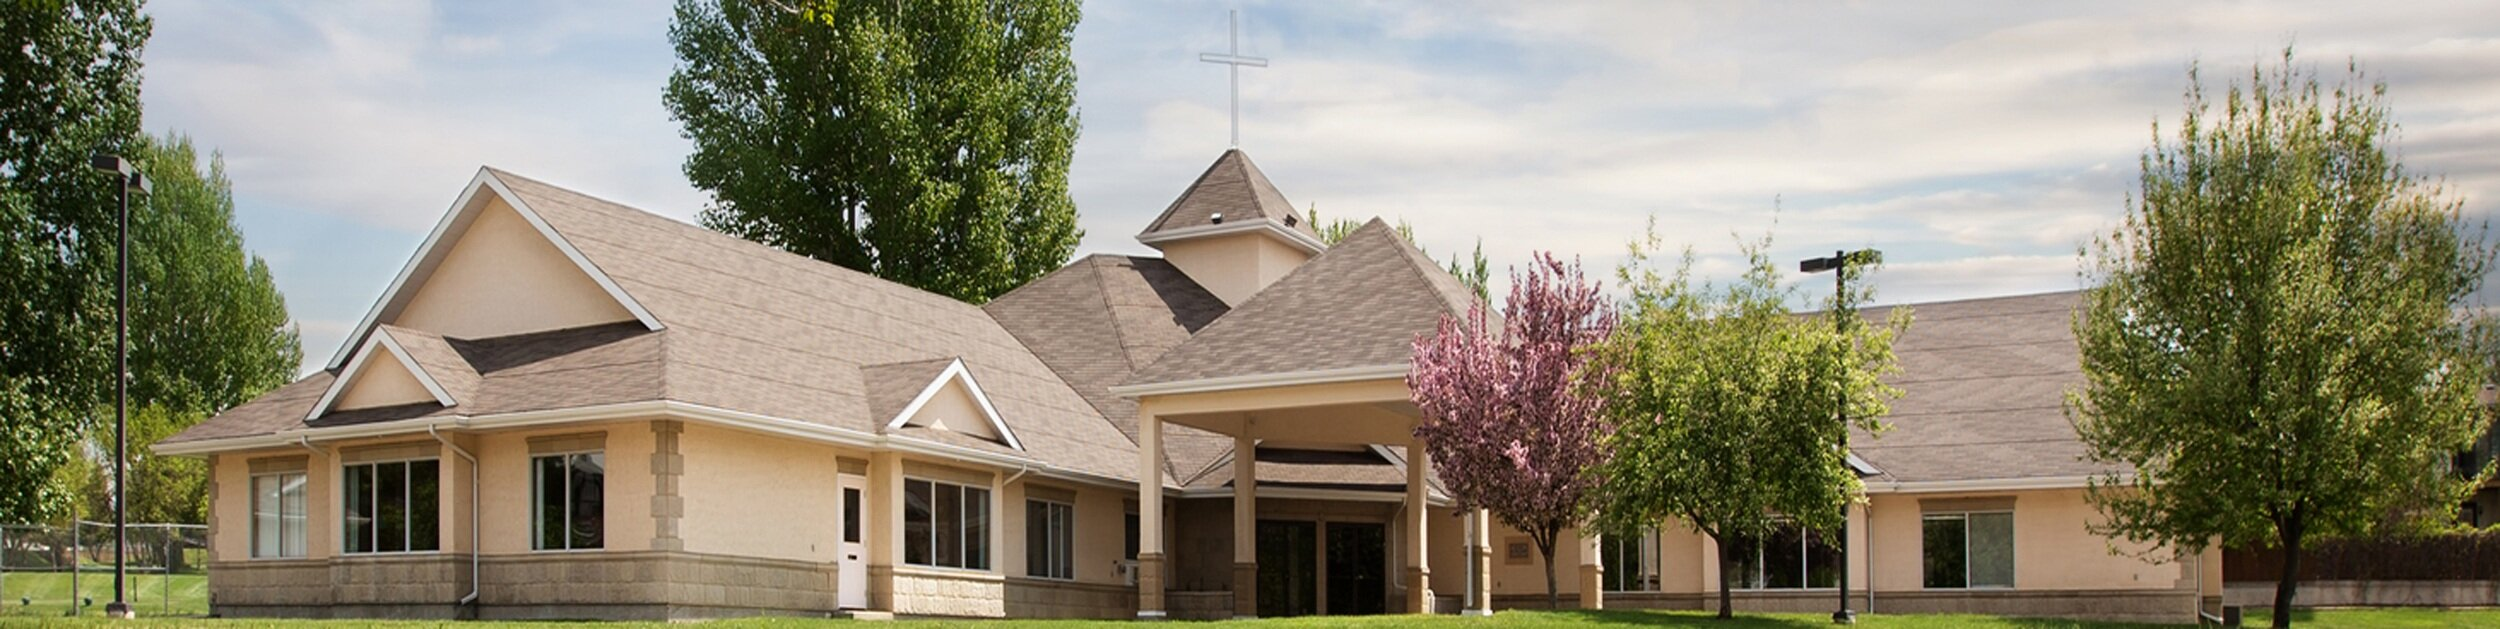 Medicine Hat Christian Reformed Church